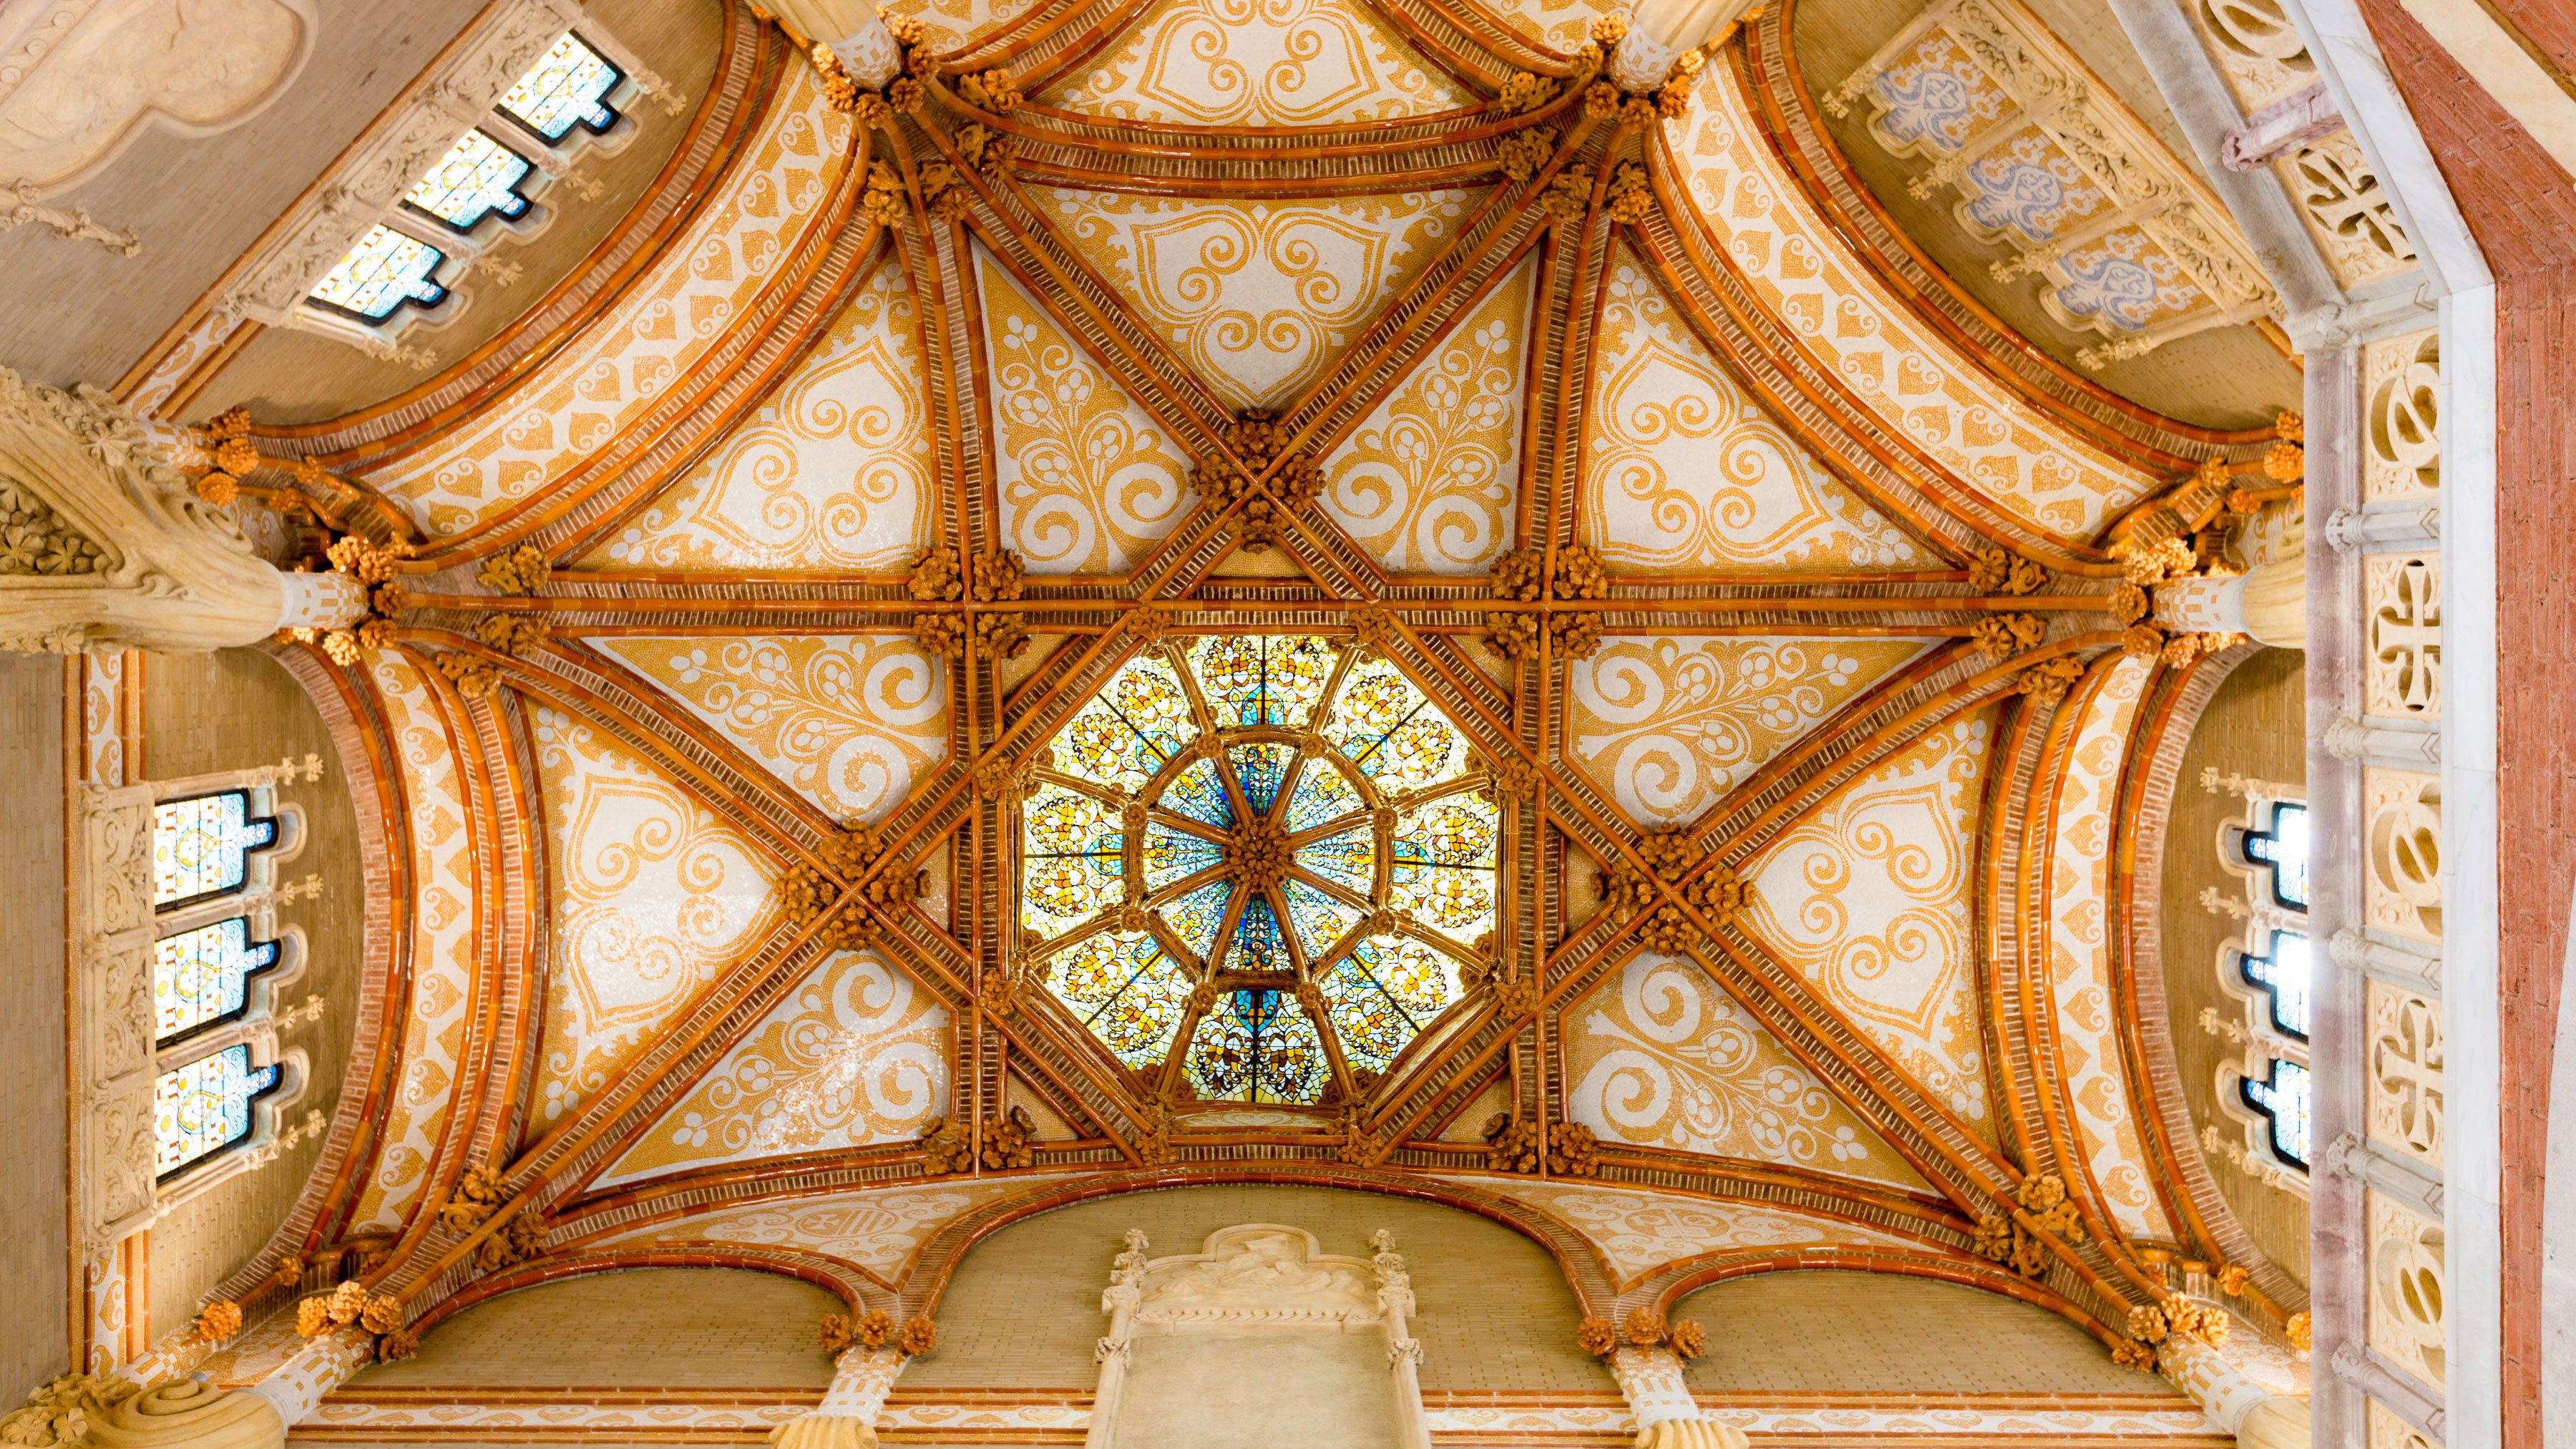 Stained glass and painted ceiling in Sant Pau